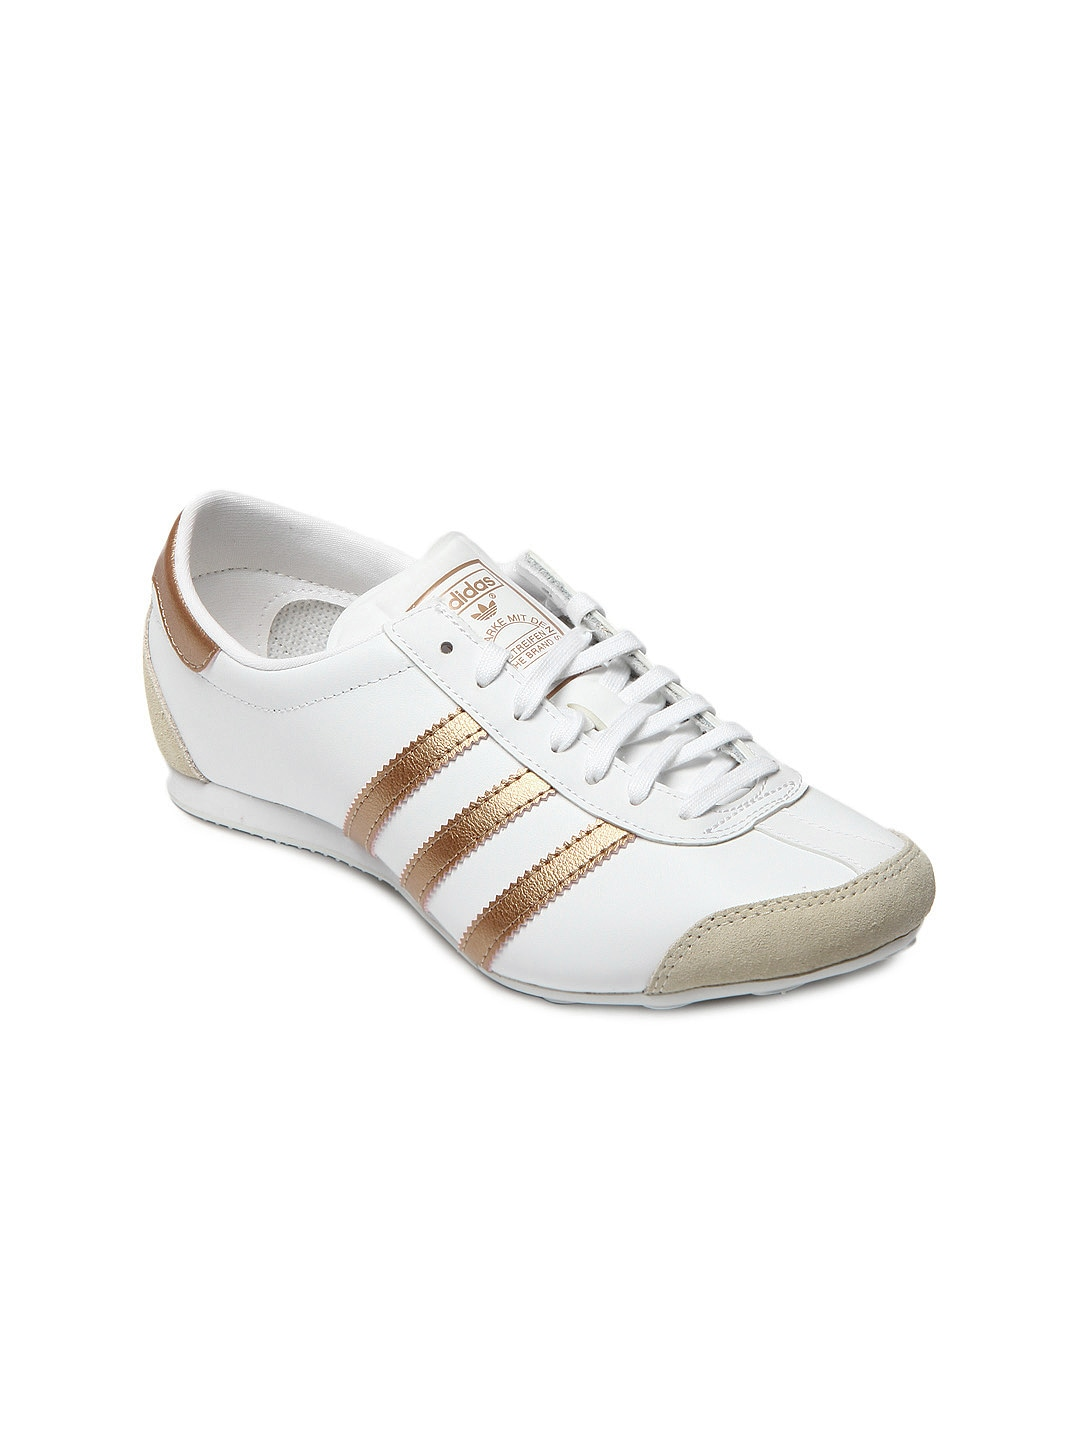 Adidas d65833 Originals Women White Aditrack W Casual Shoes- Price in India e0ff70592